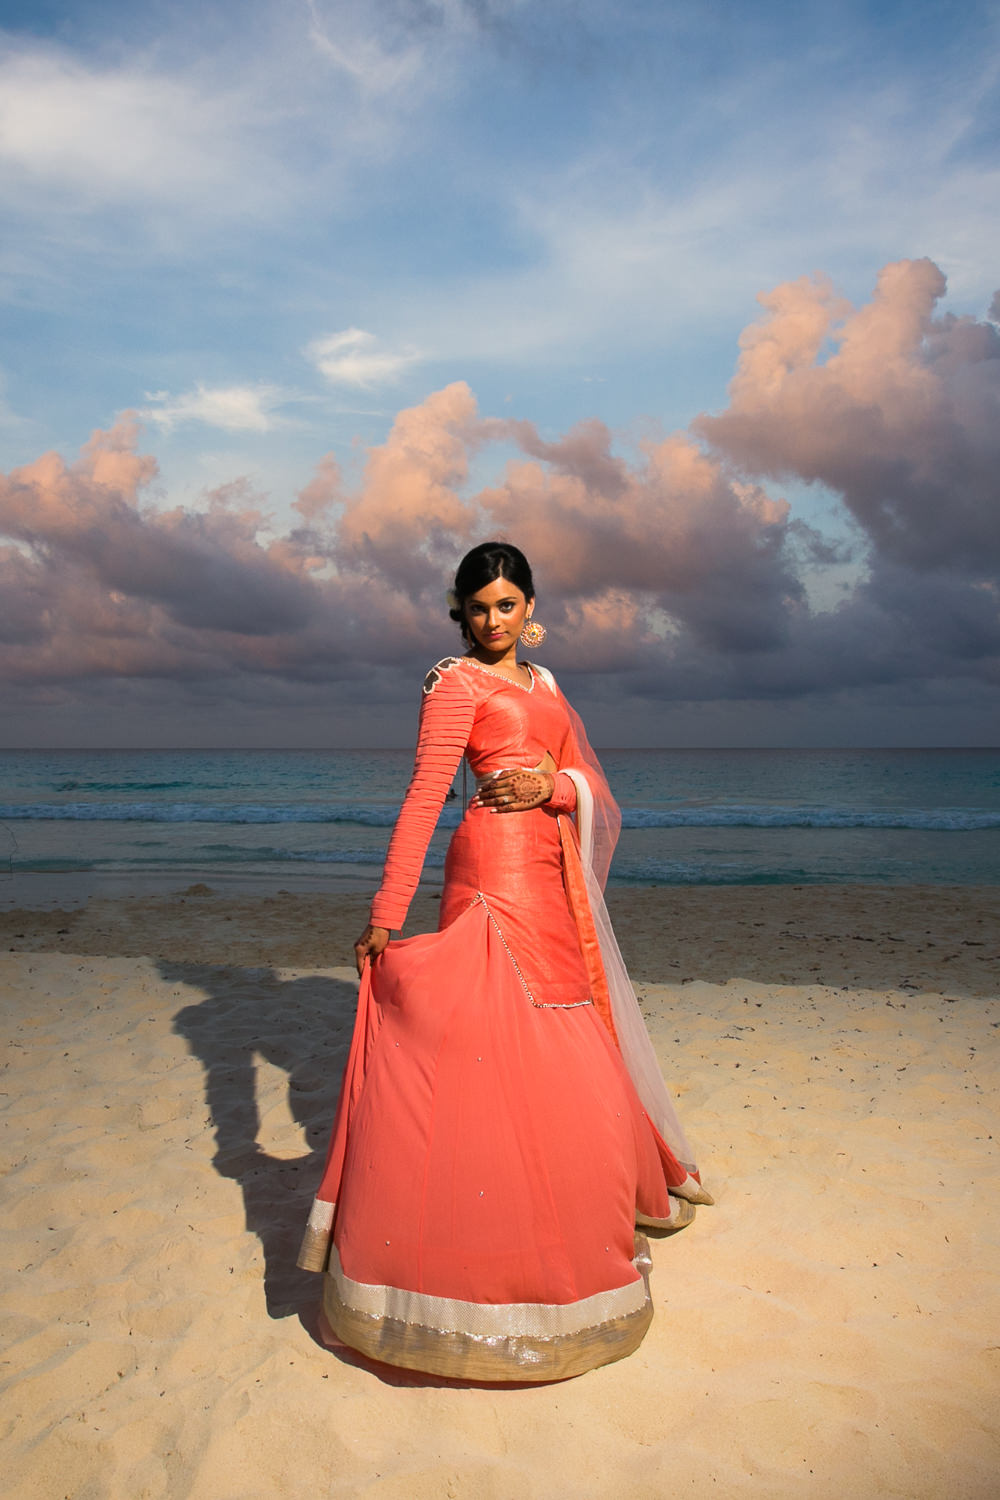 Paradisus Cancun Indian Wedding - Bride Portrait on the Beach with Dramatic Sky